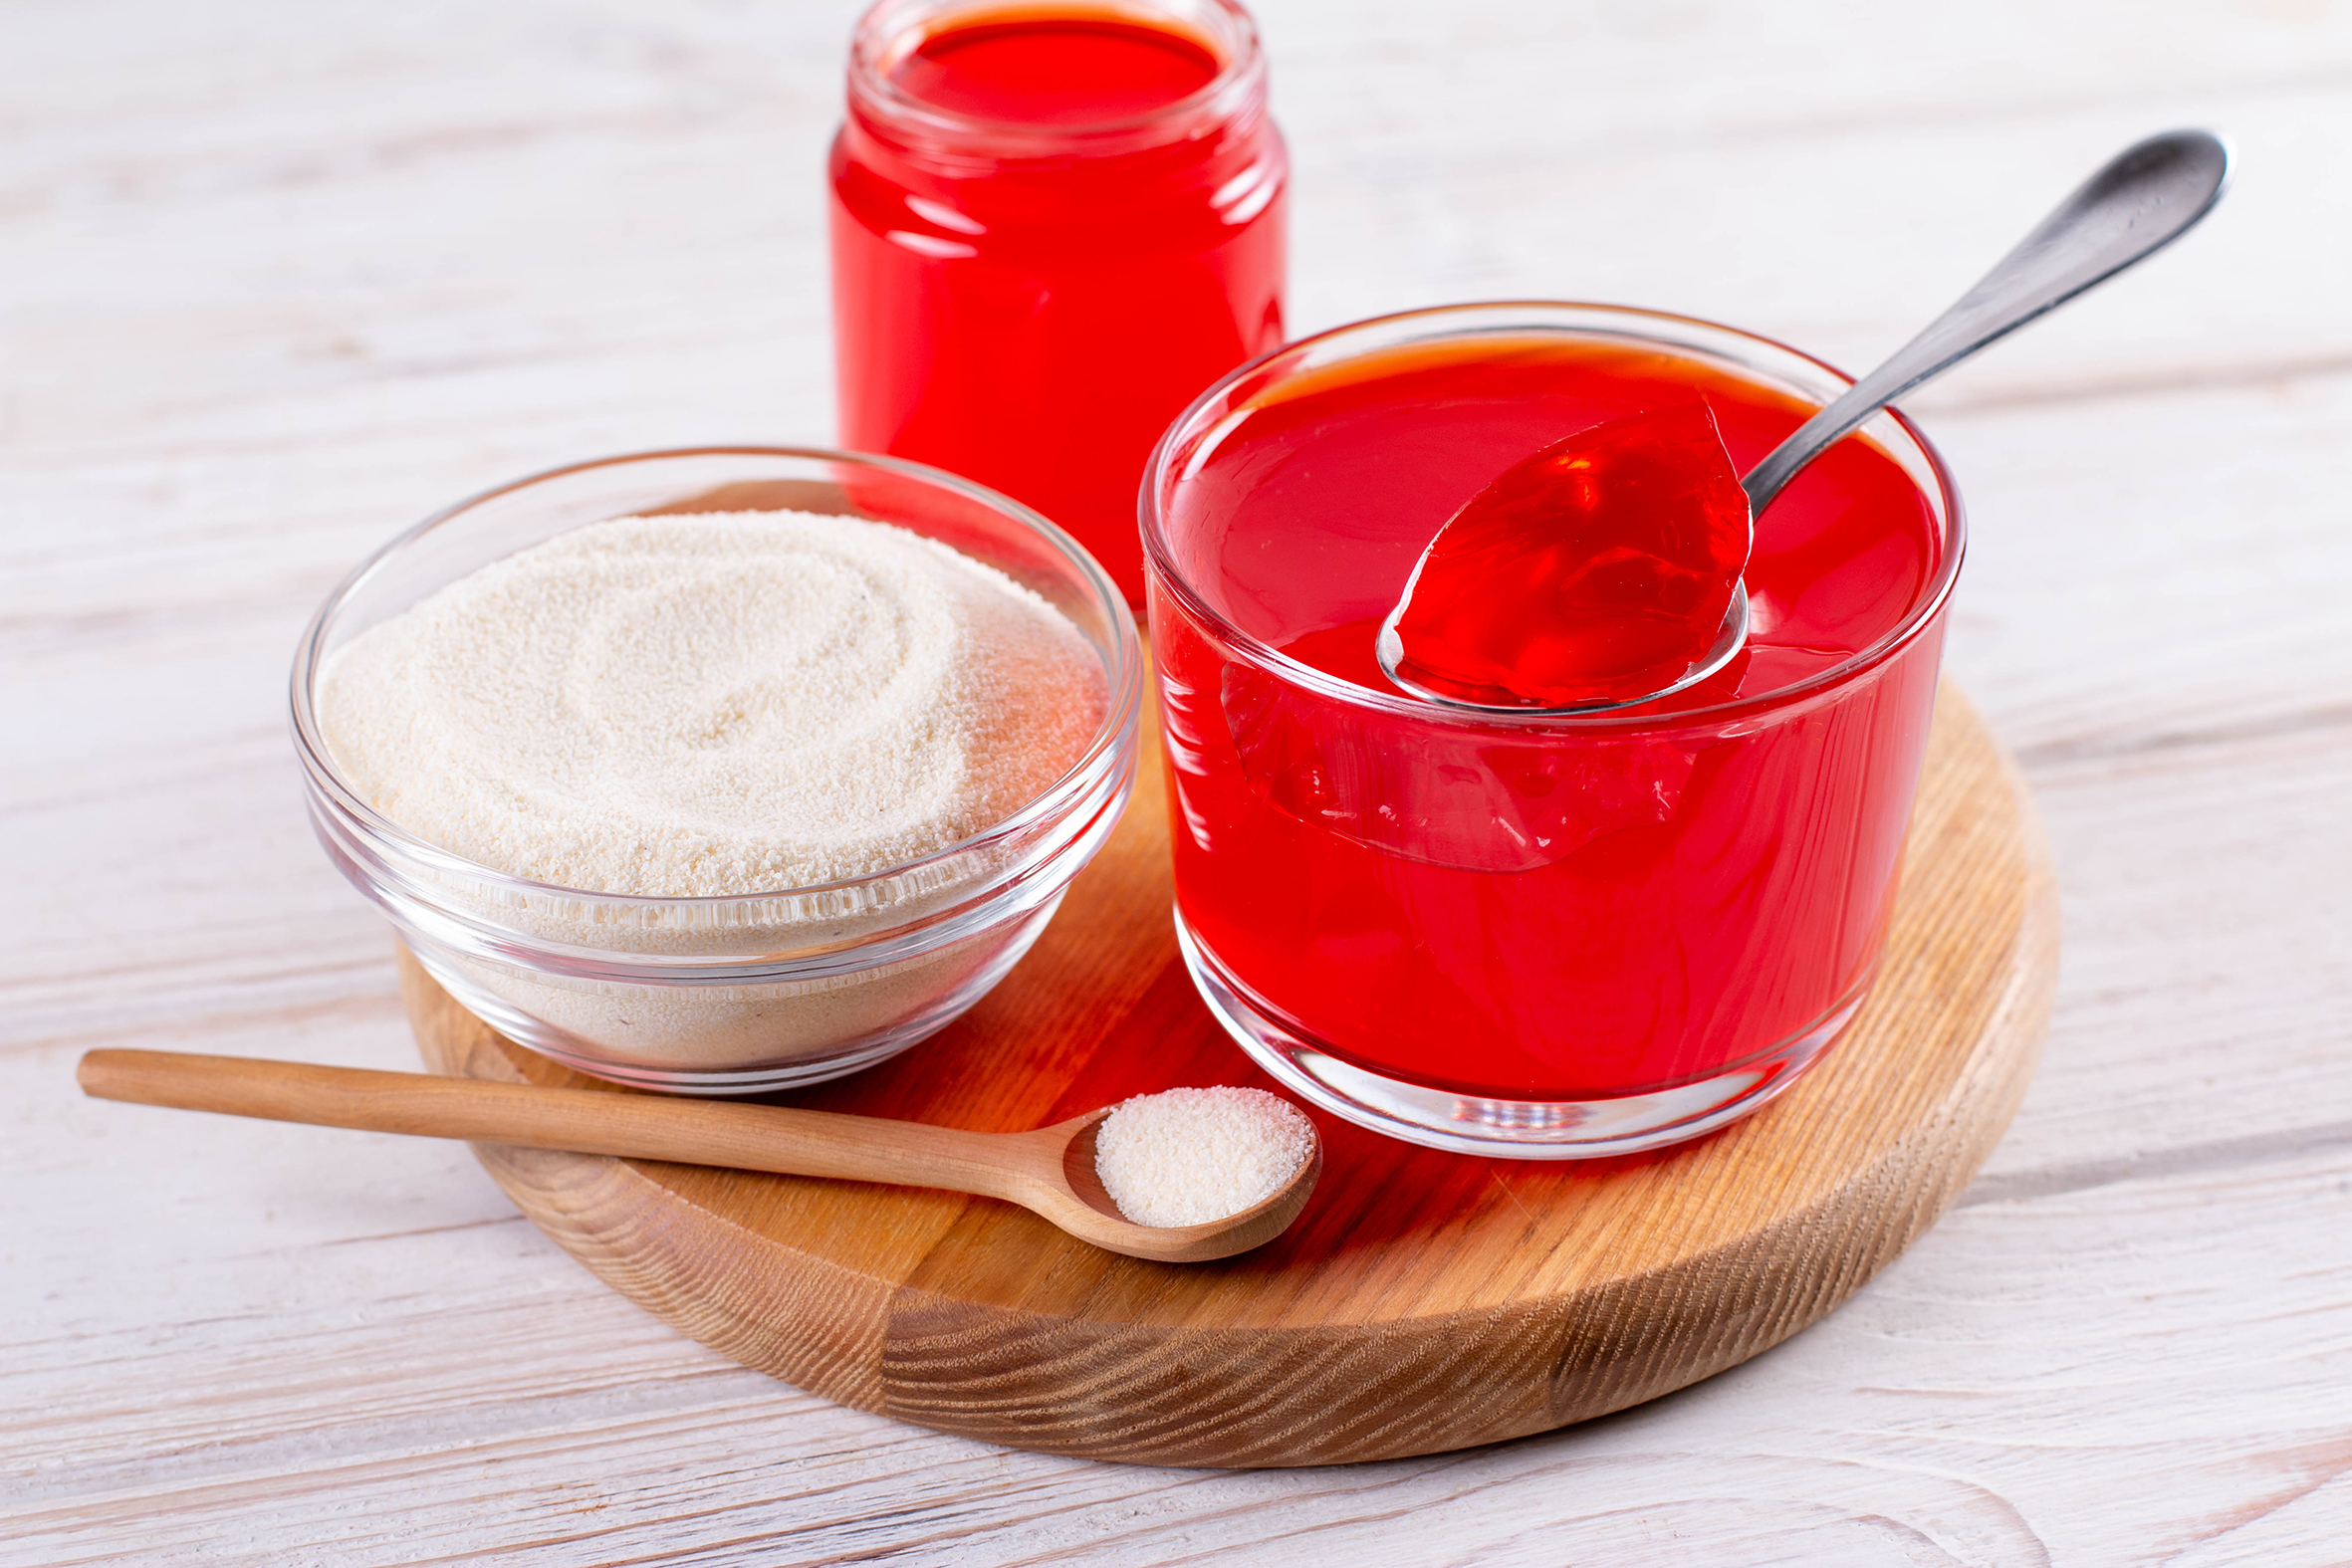 On a wooden serving tray is a wooden spoon with white powder, a glass bowl with white powder, and two glass containers with red gelatin, one has a silver spoon in it.